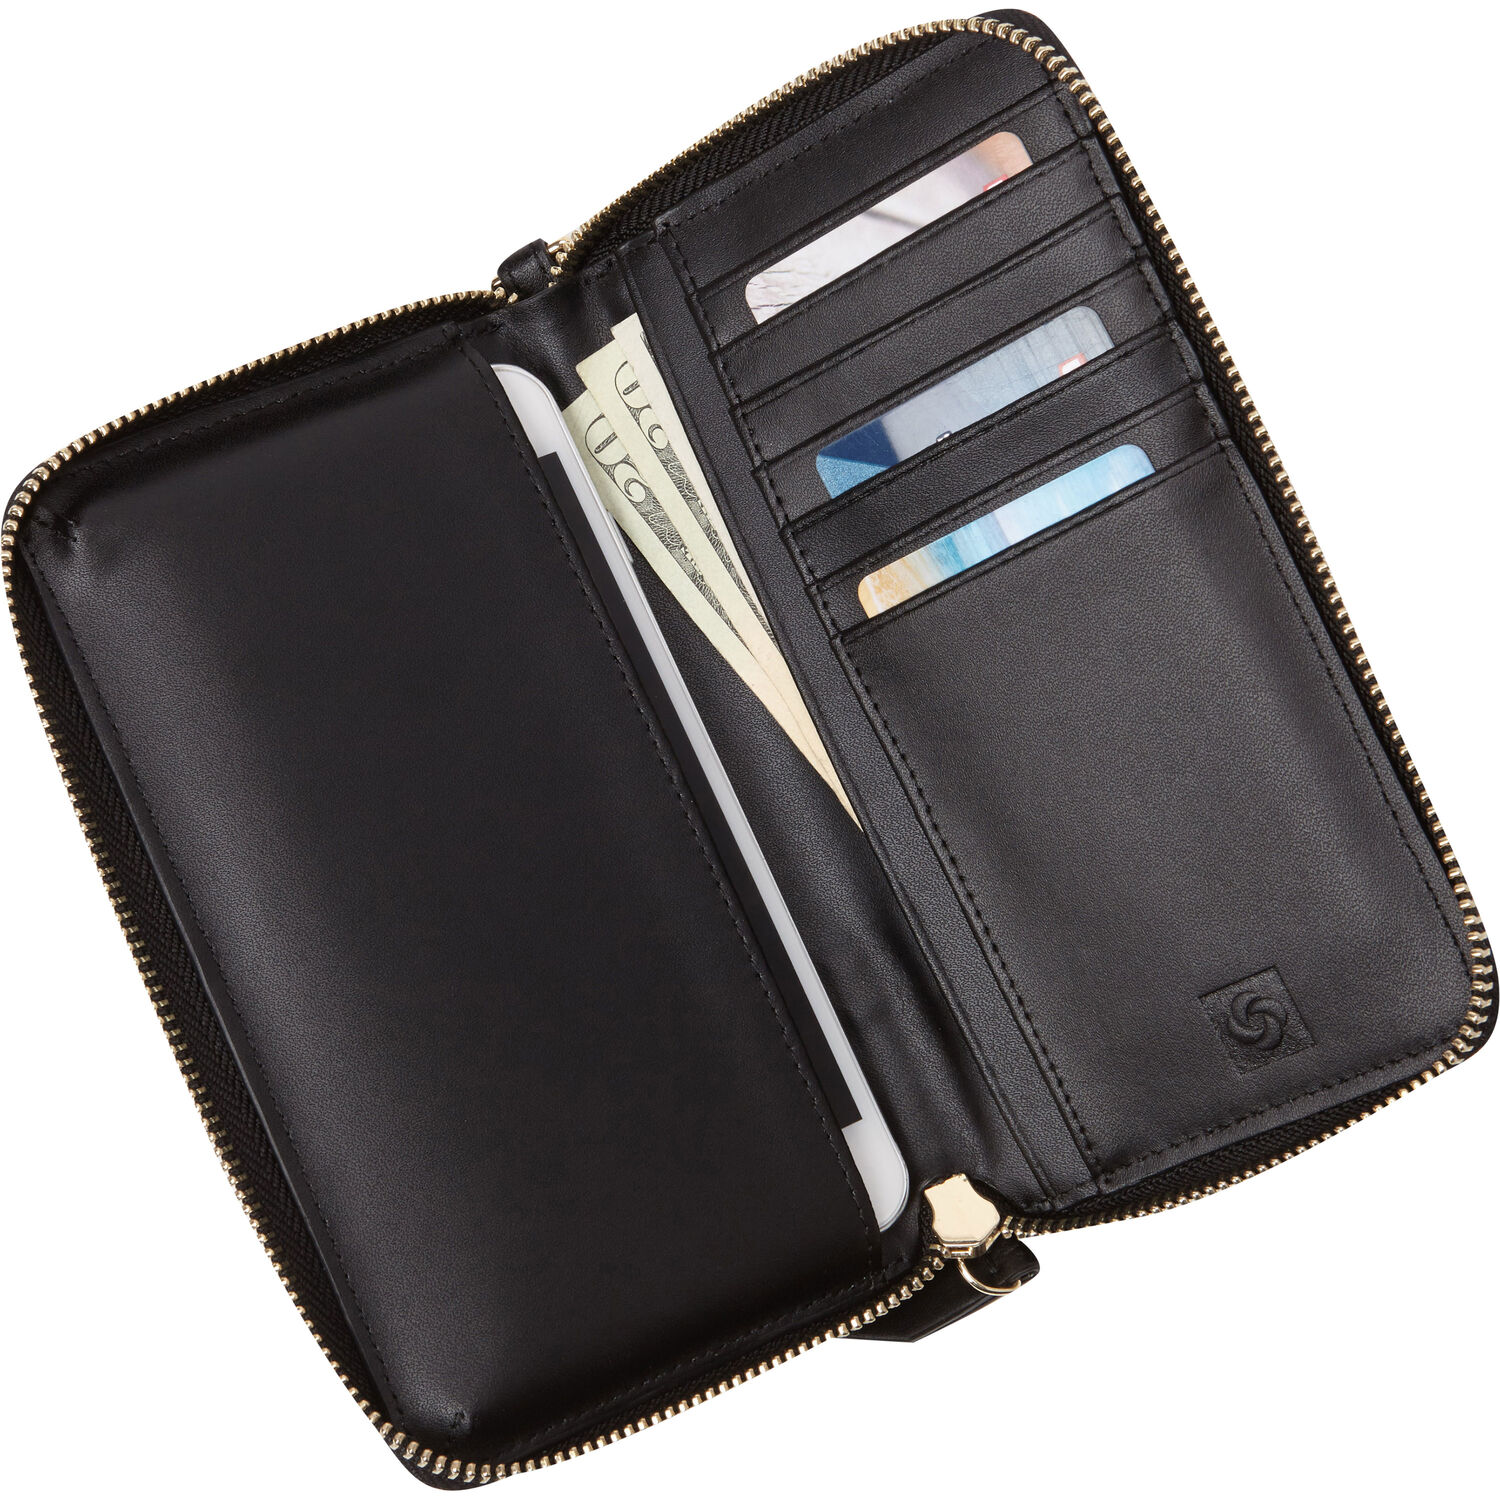 123a29a4b Samsonite Ladies Leather Zip Tech Wristlet in the color Black.